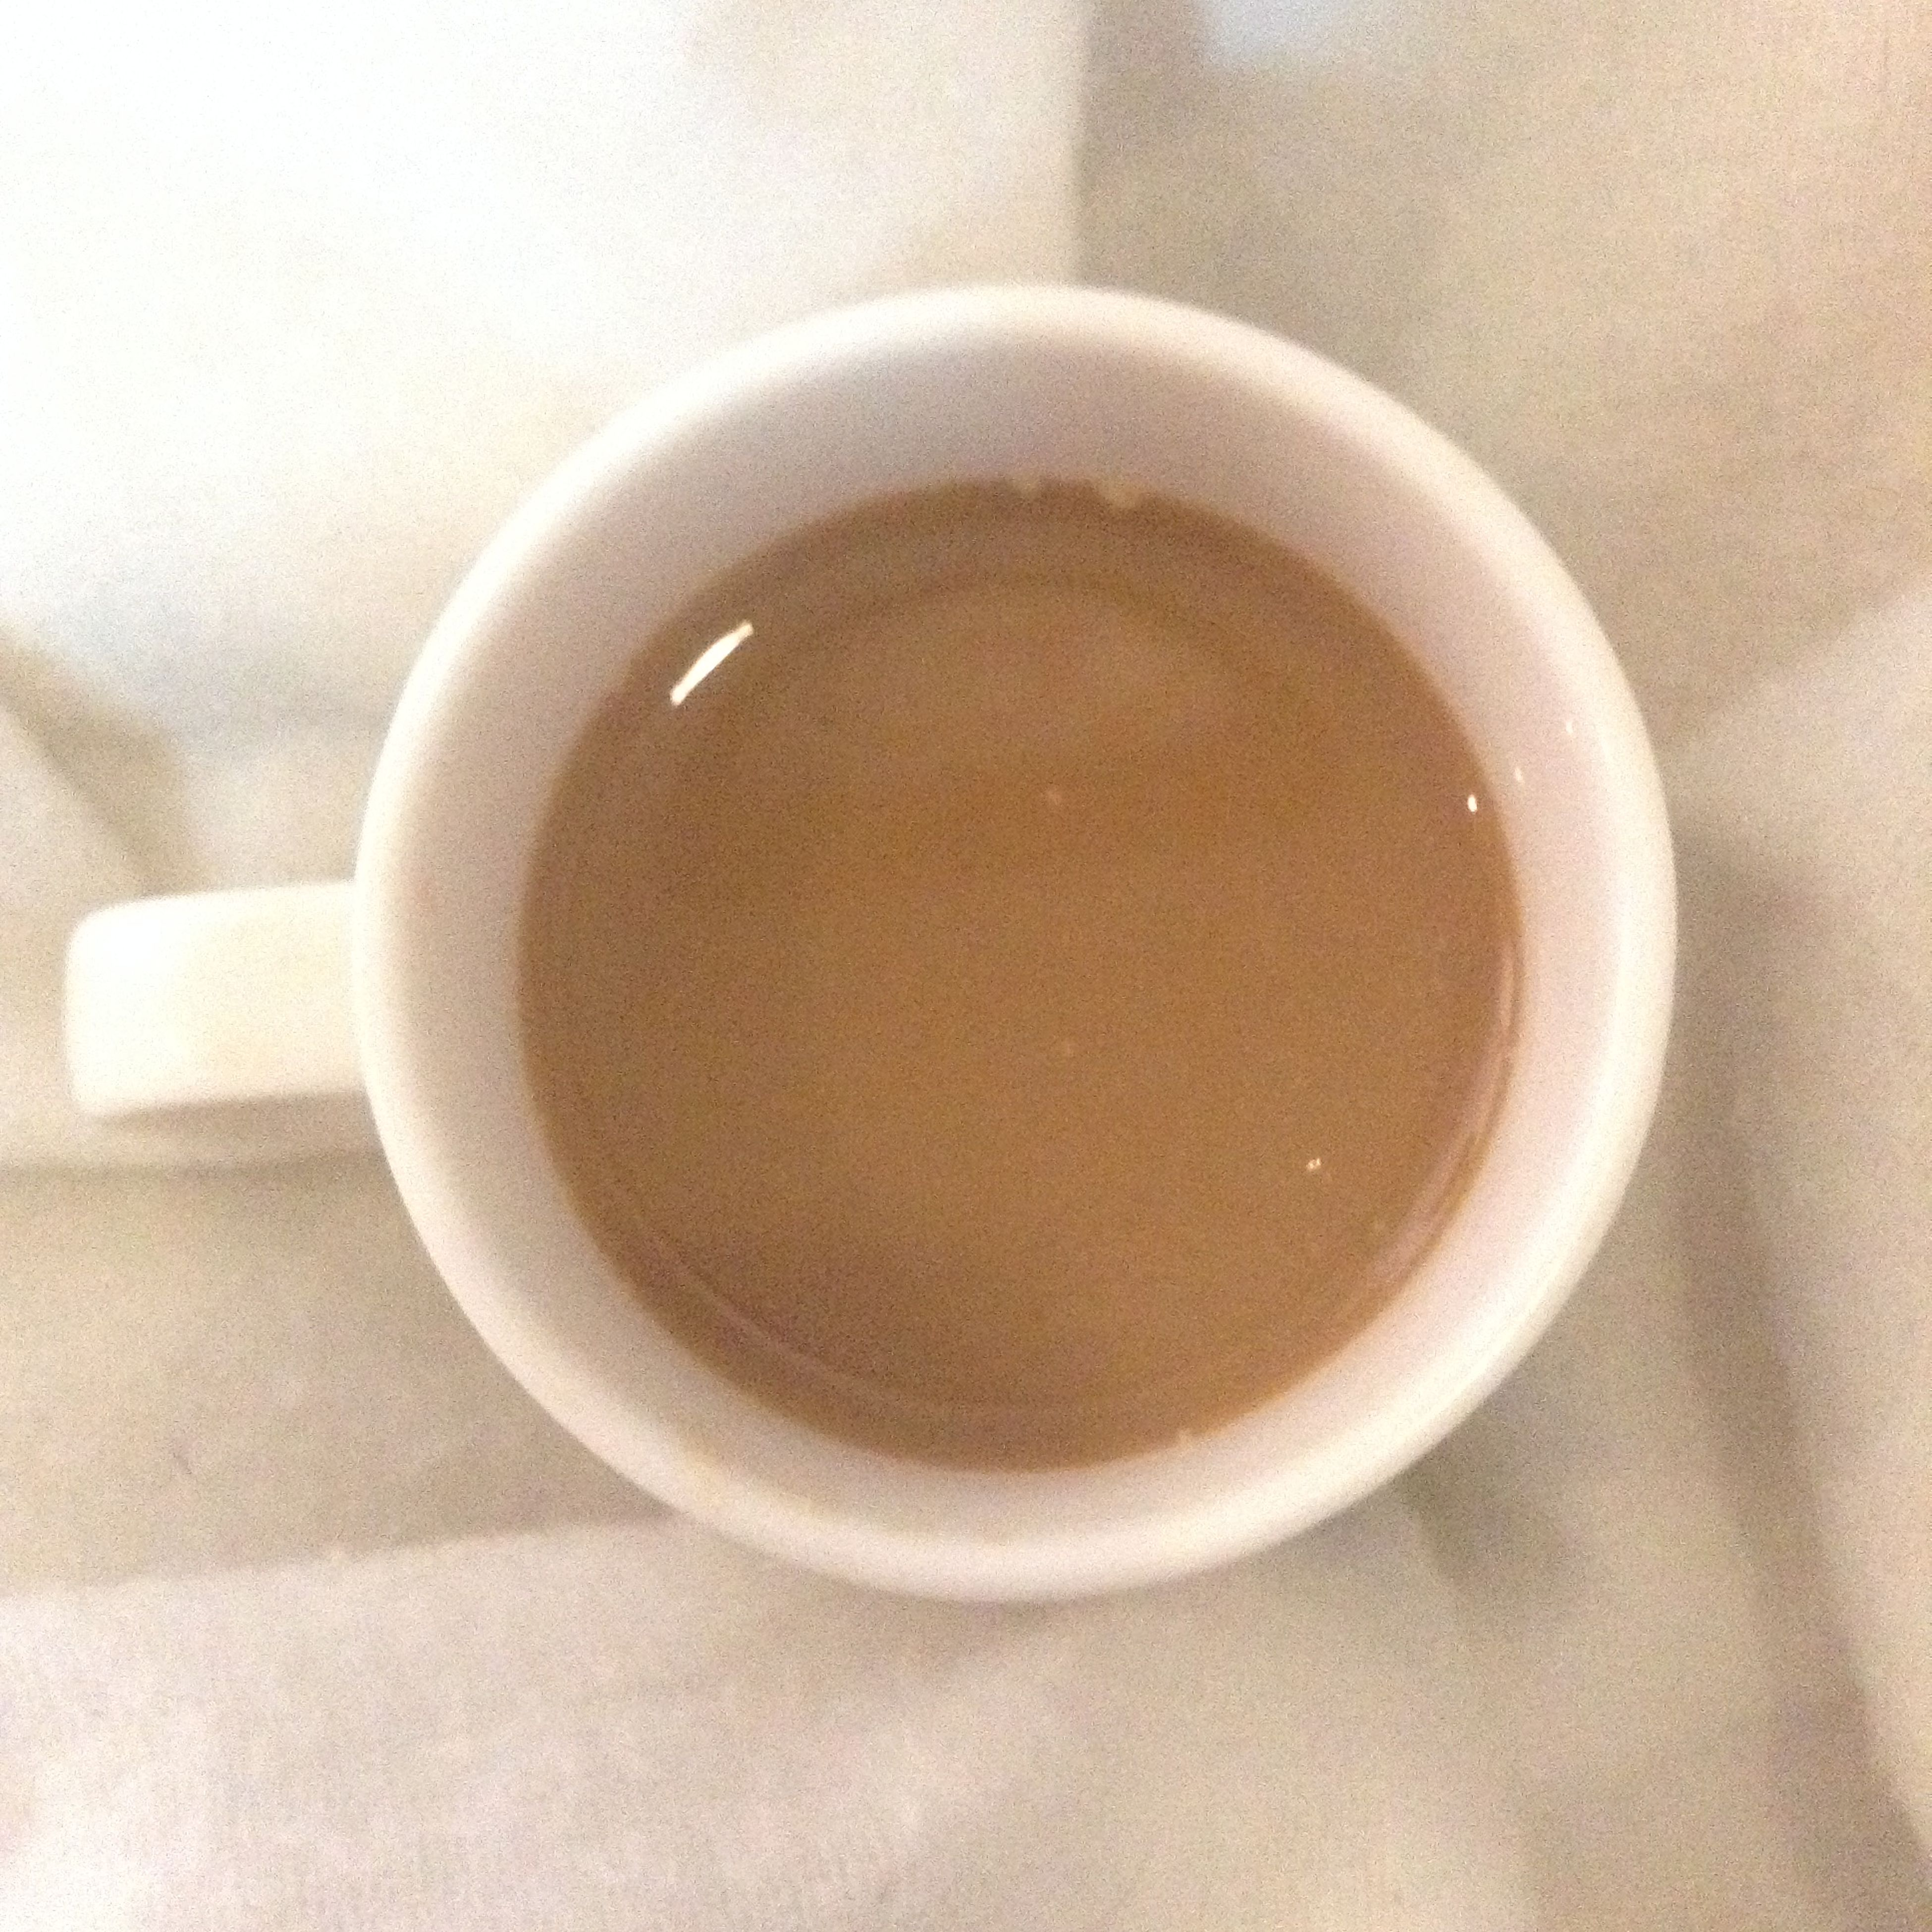 indoors, coffee cup, food and drink, drink, still life, refreshment, table, high angle view, coffee - drink, saucer, cup, directly above, close-up, freshness, coffee, spoon, no people, overhead view, tea cup, circle